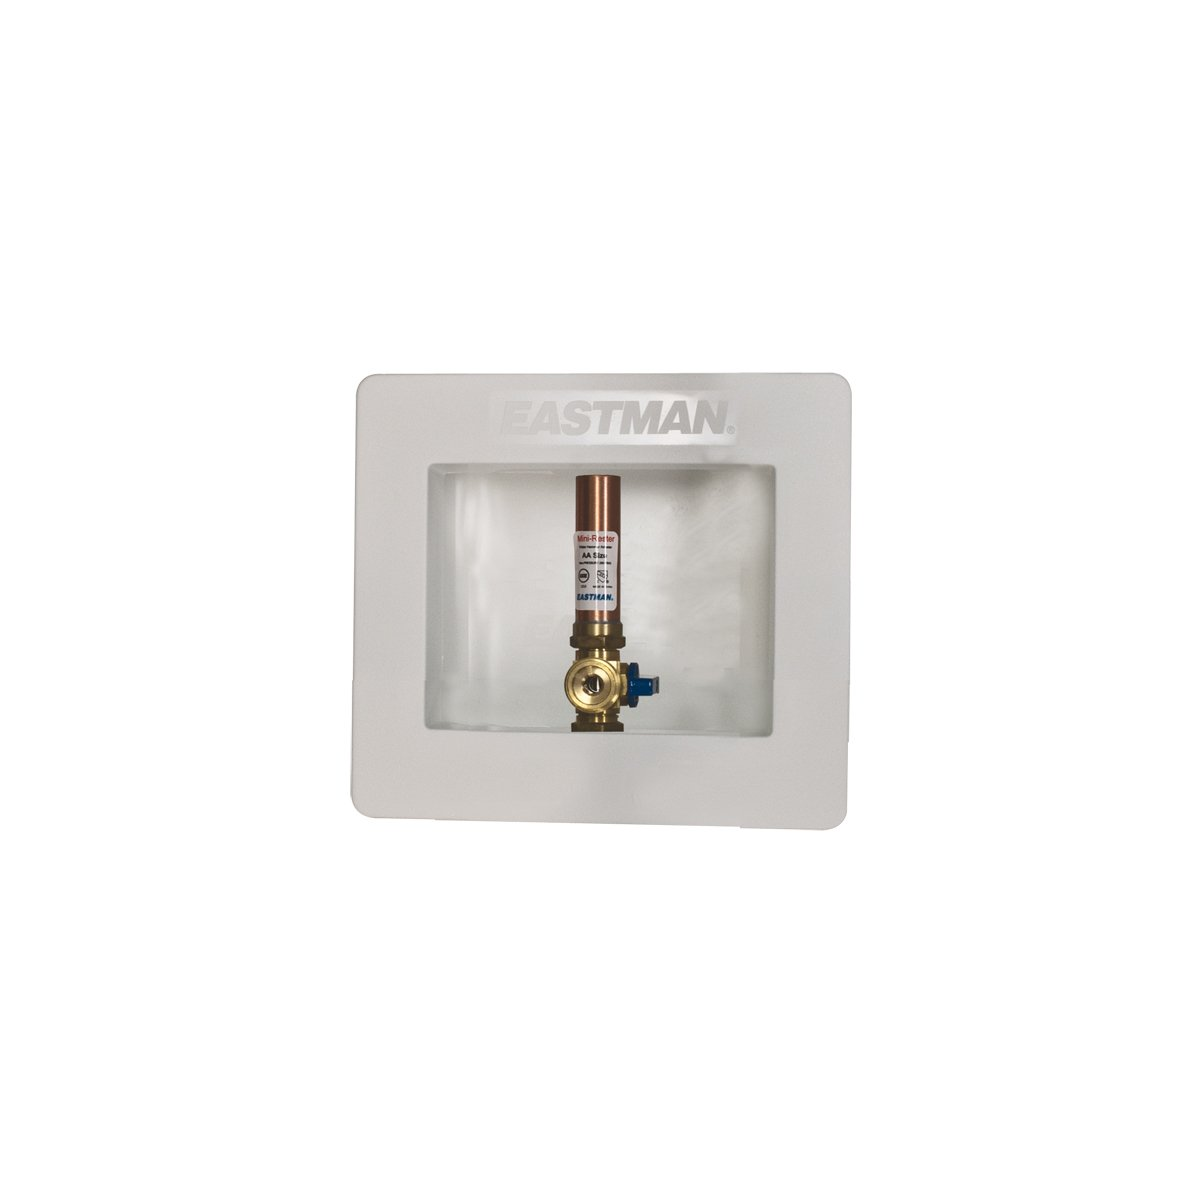 Eastman 60241 Sweat Ice Maker Box with Hammer Arrester, 1/2 Sweat Inlet, White 1/2 Sweat Inlet EZ-FLO